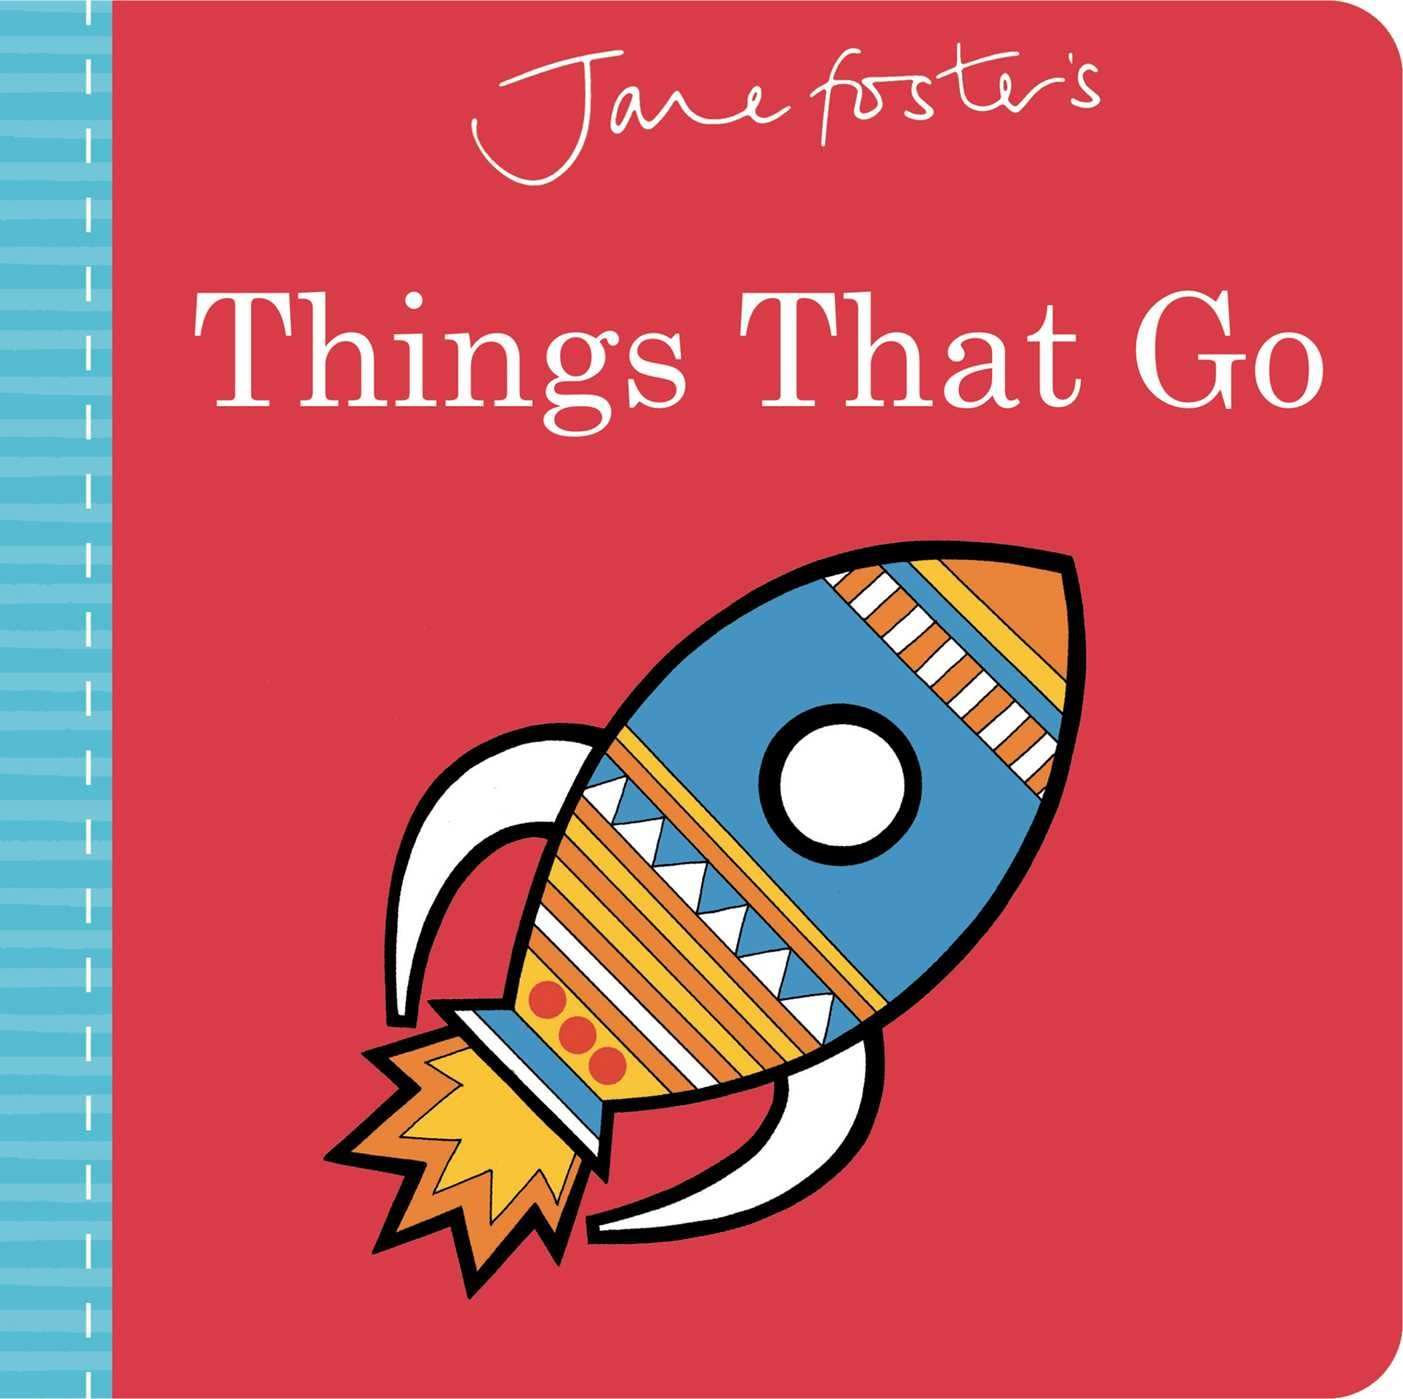 Amazon.com: Jane Fosters Things That Go (Jane Foster Books ...